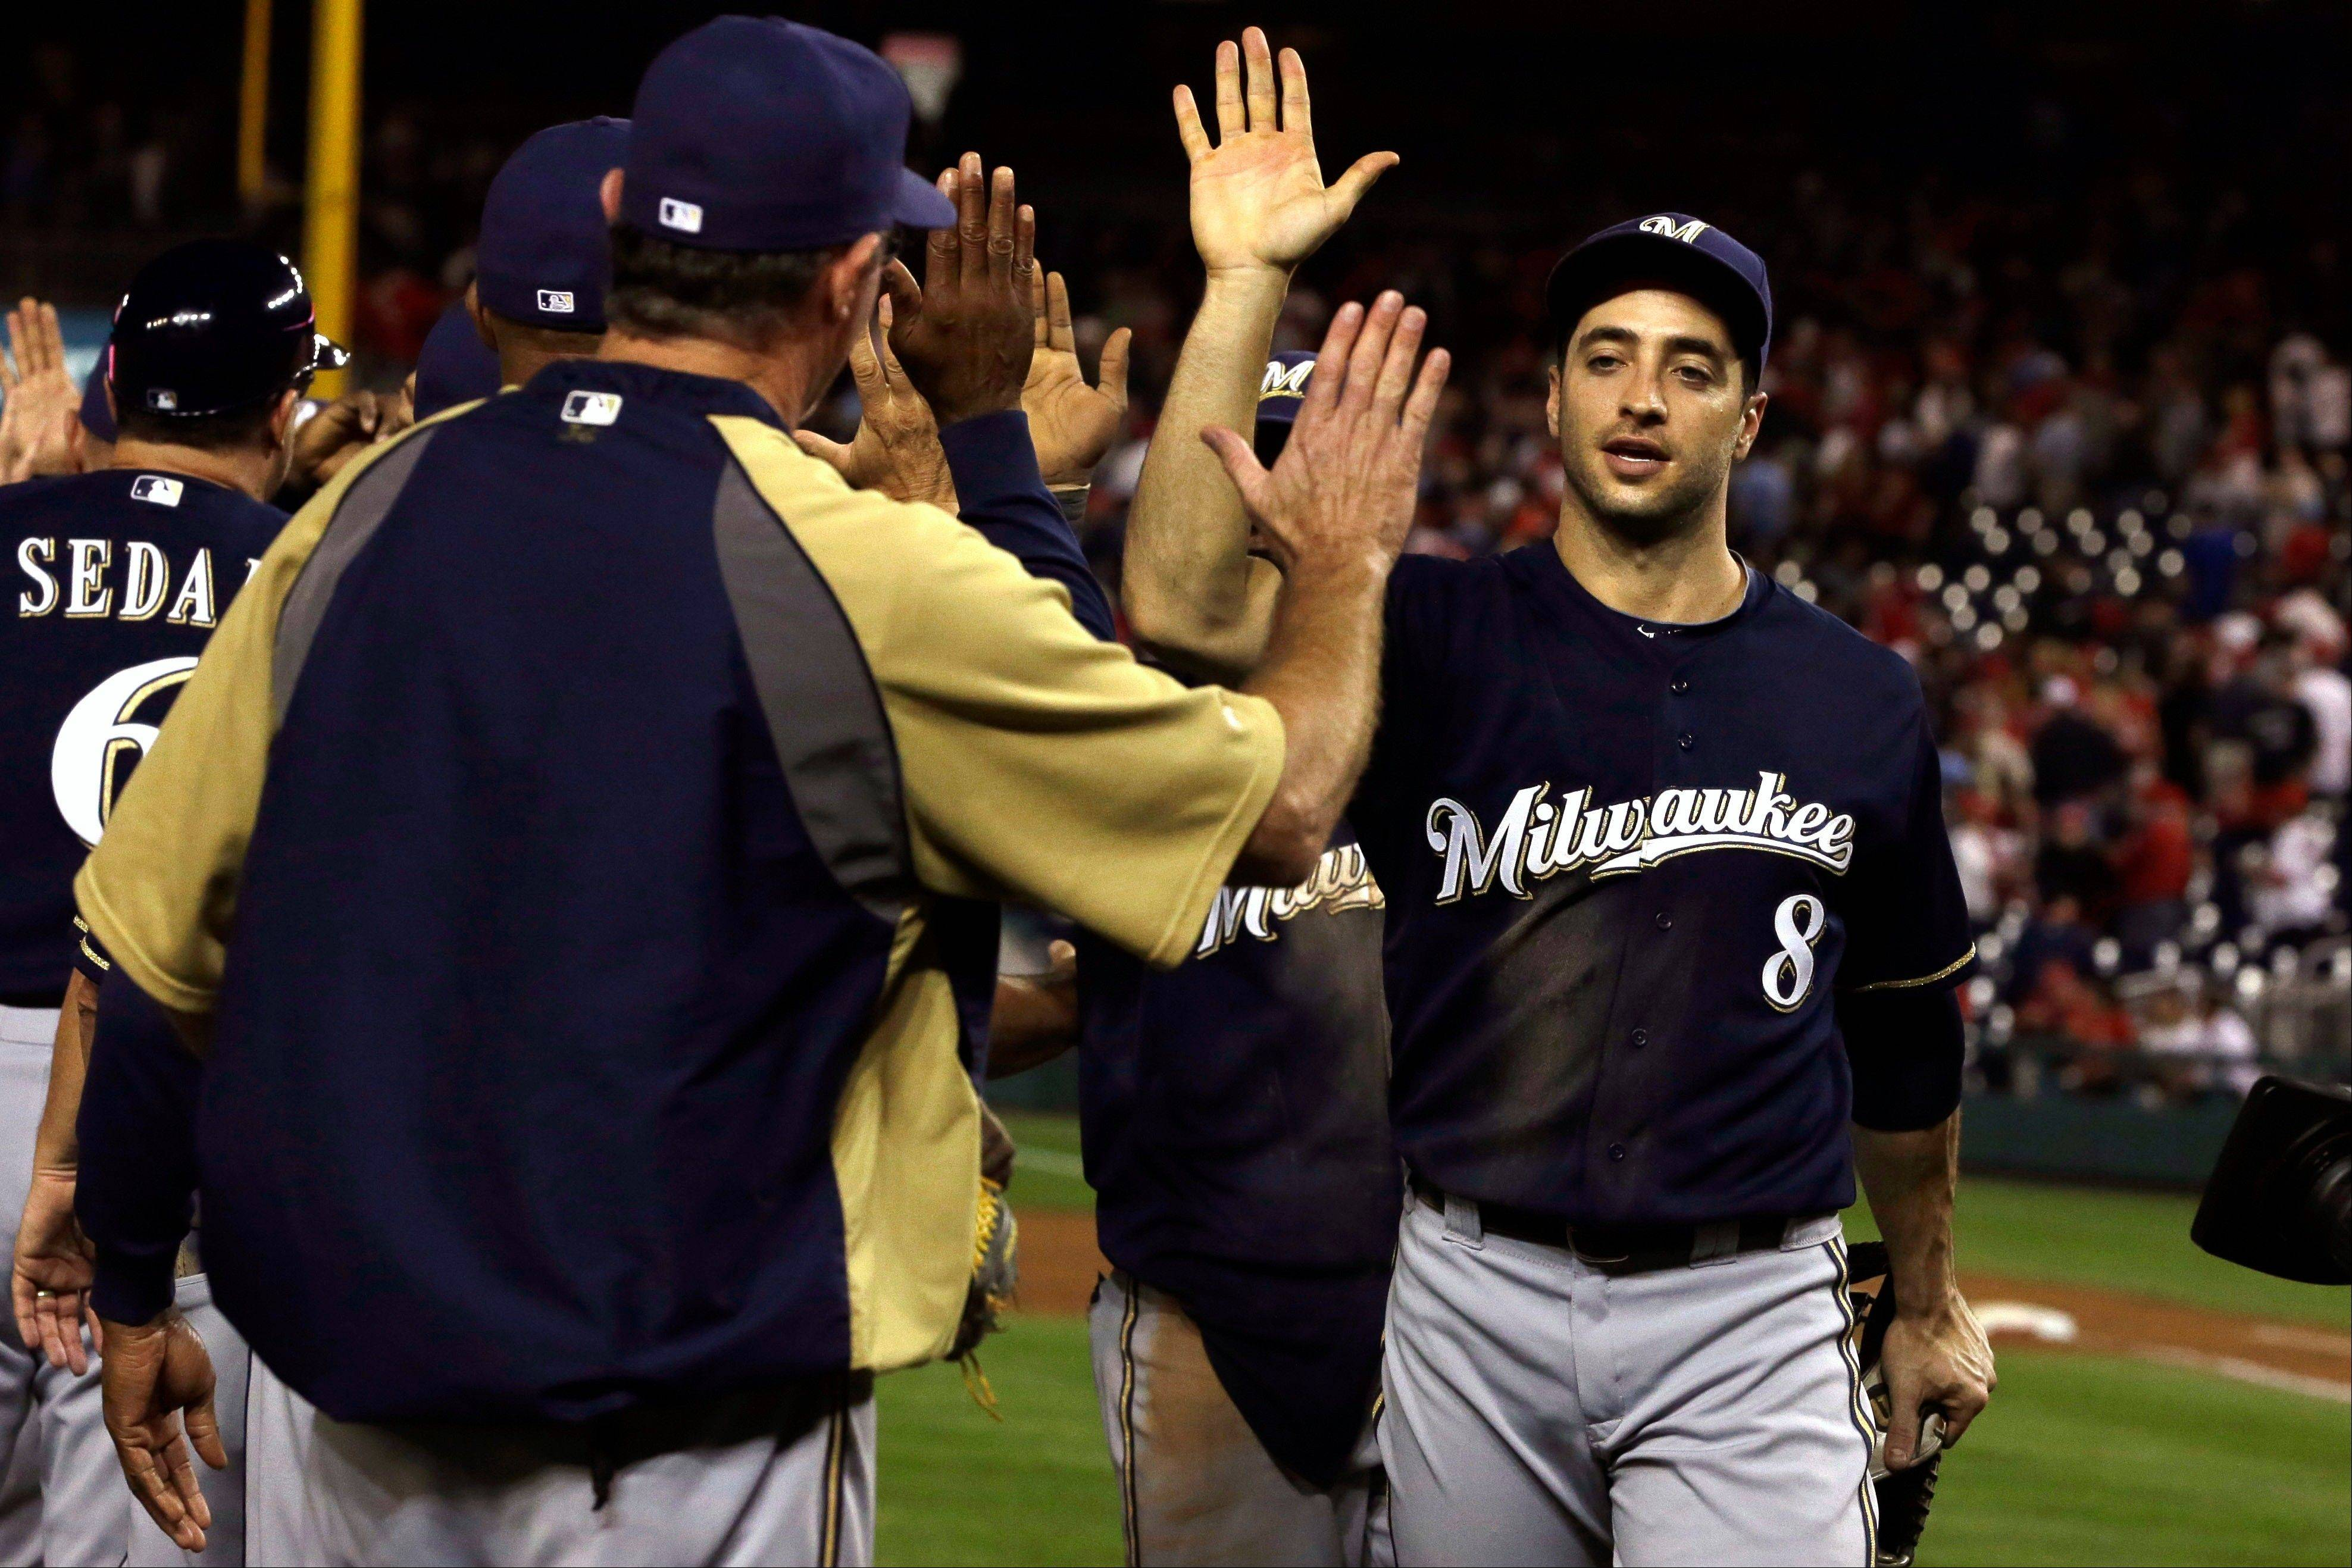 Milwaukee's Ryan Braun (8) high-fives teammates after they downed the Nationals 4-2 on Friday night in Washington.